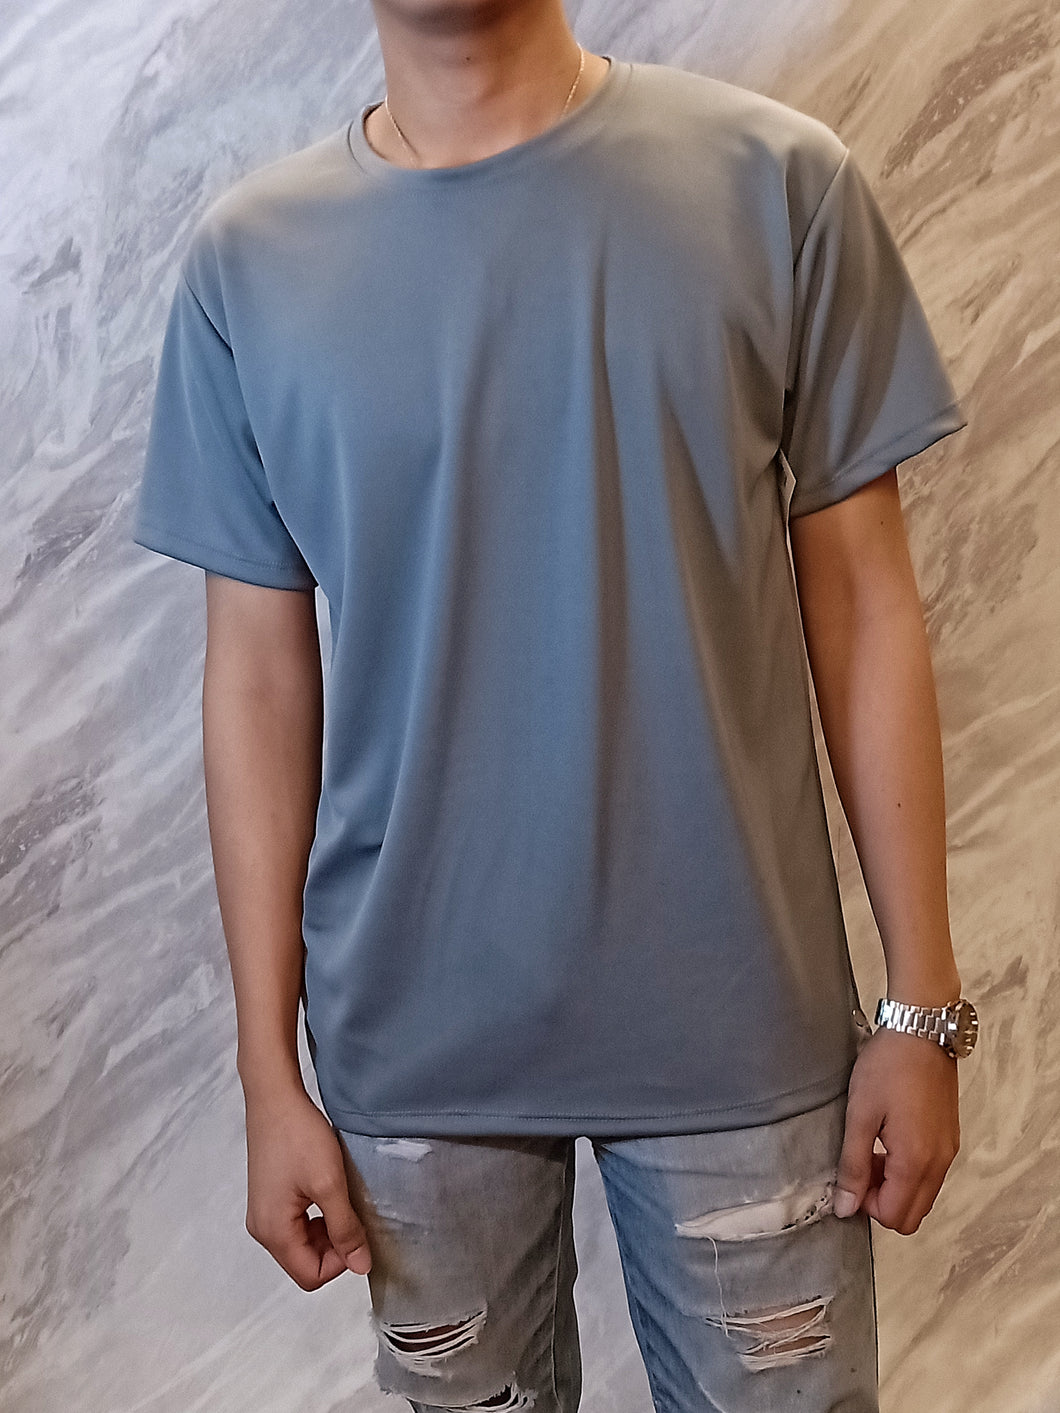 Gray drifit shirt